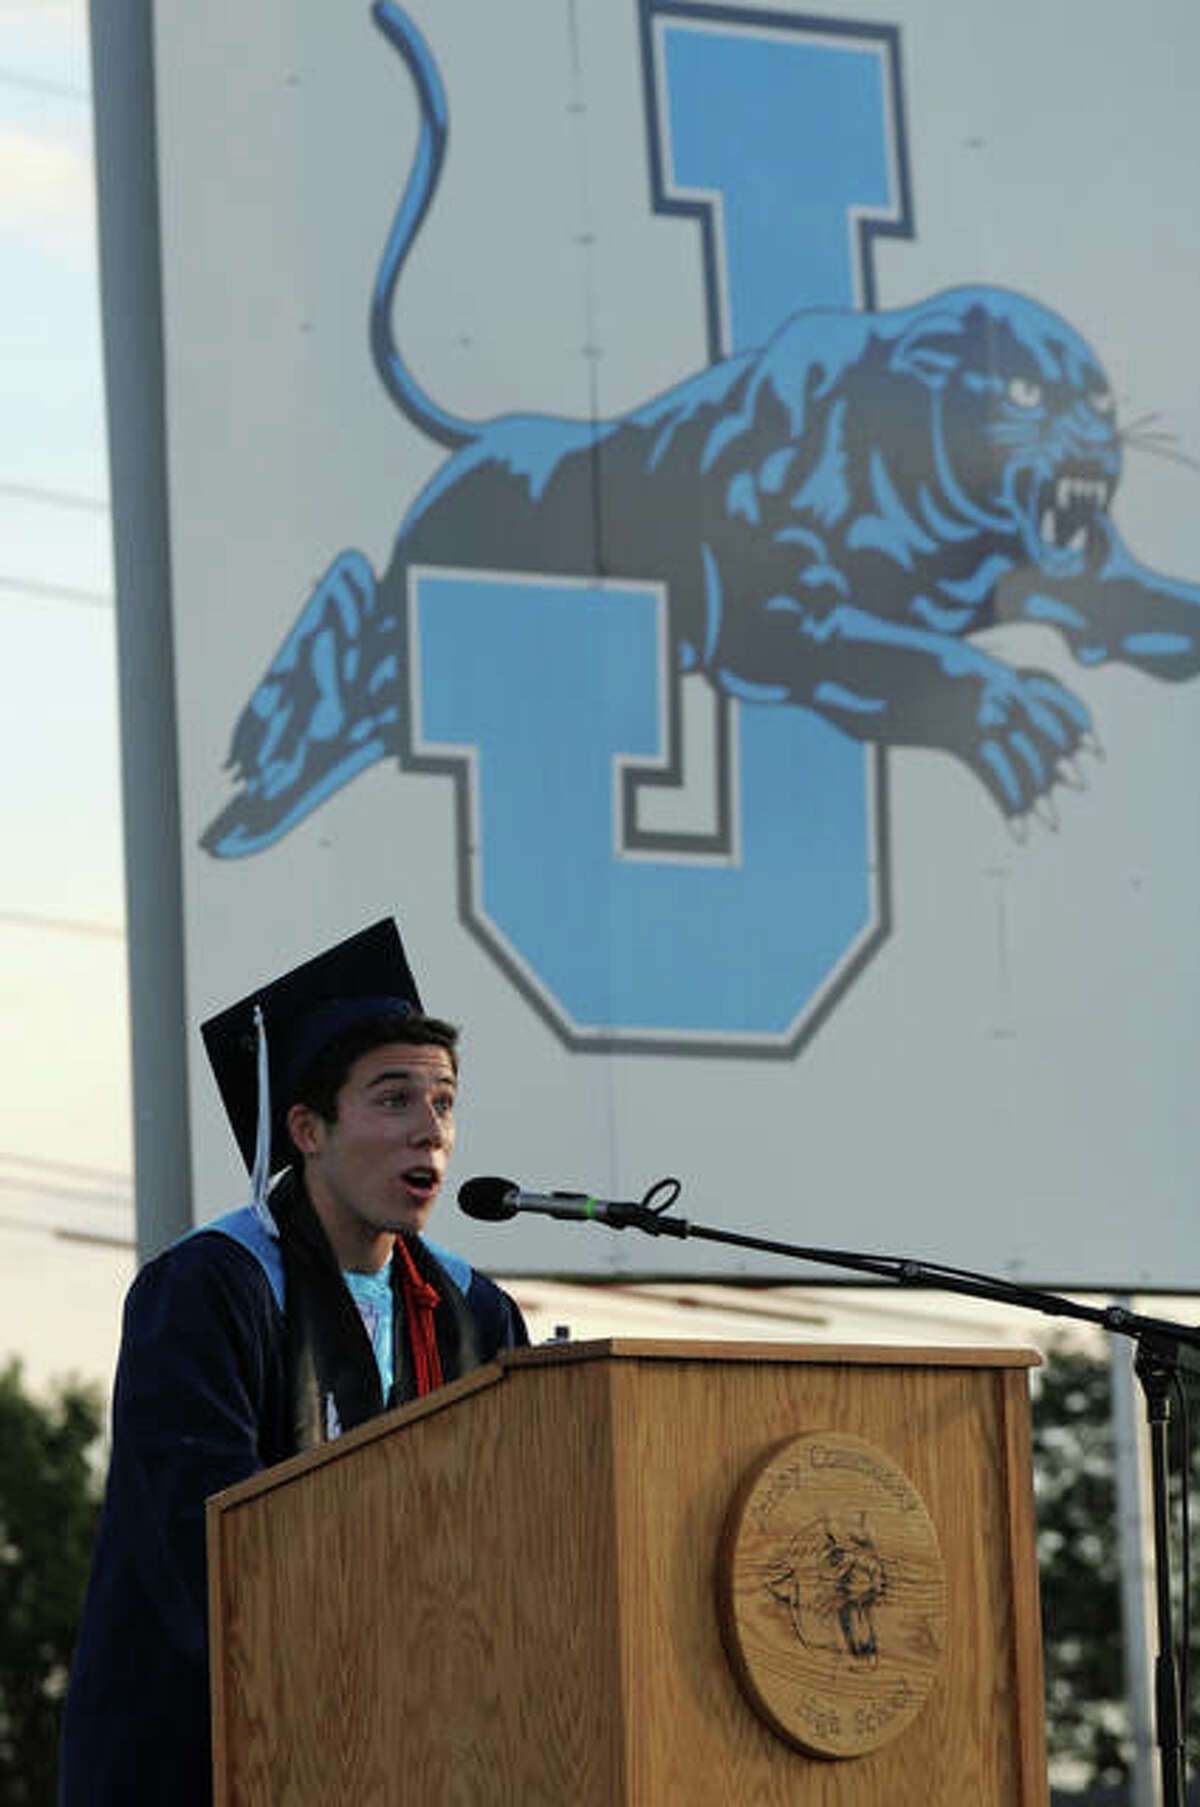 Grant Morgan gives the commencement address on behalf of his fellow Jerseyville High School graduates.